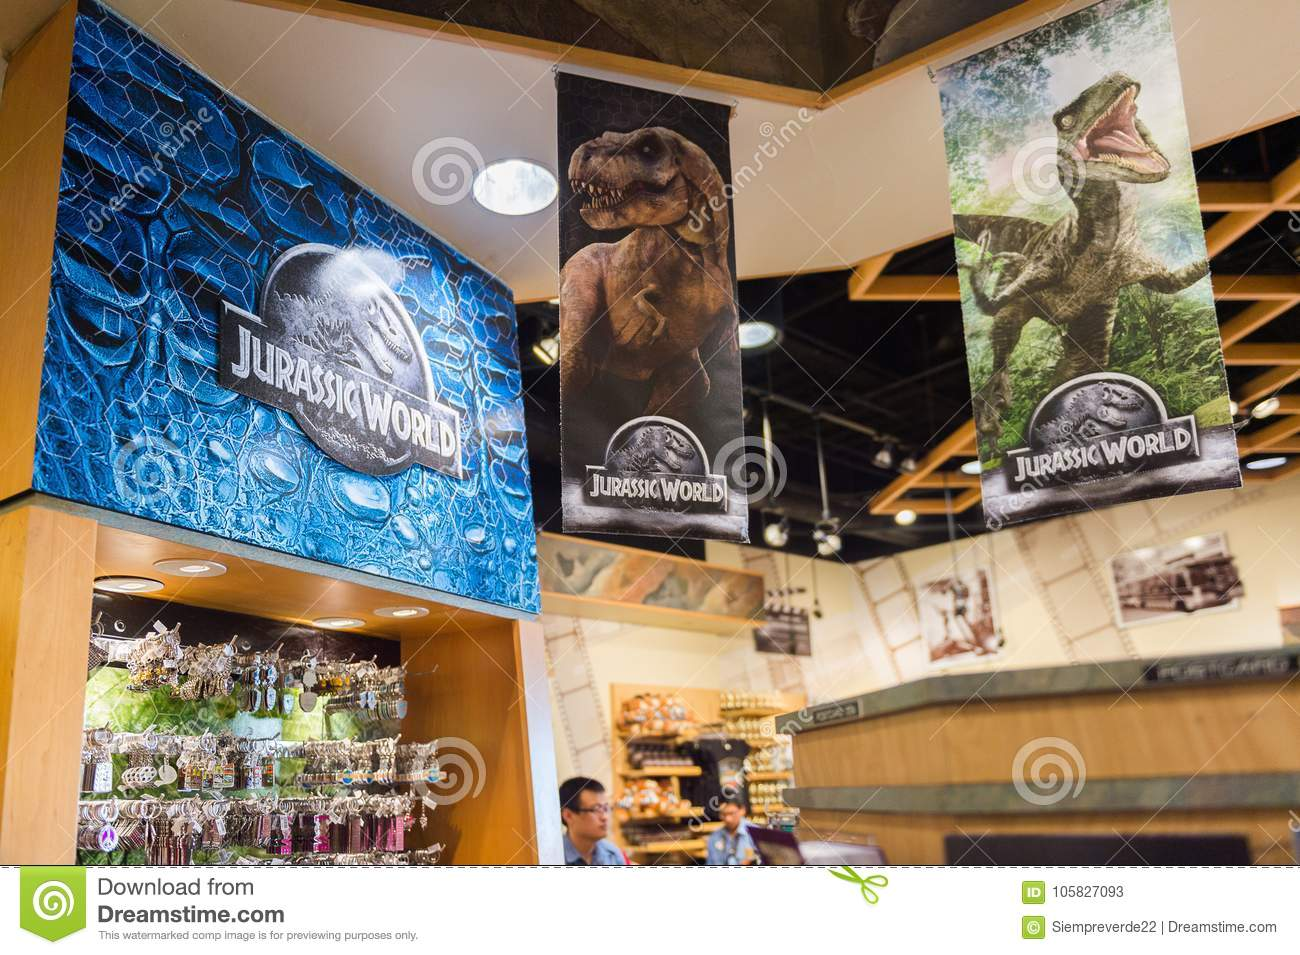 Los Angeles Usa Sep 27 2015 Gift Shop At The Jurassic Park Area In The Universal Studios Hollywood Park Jurassic Park Is A 1993 American Adventure